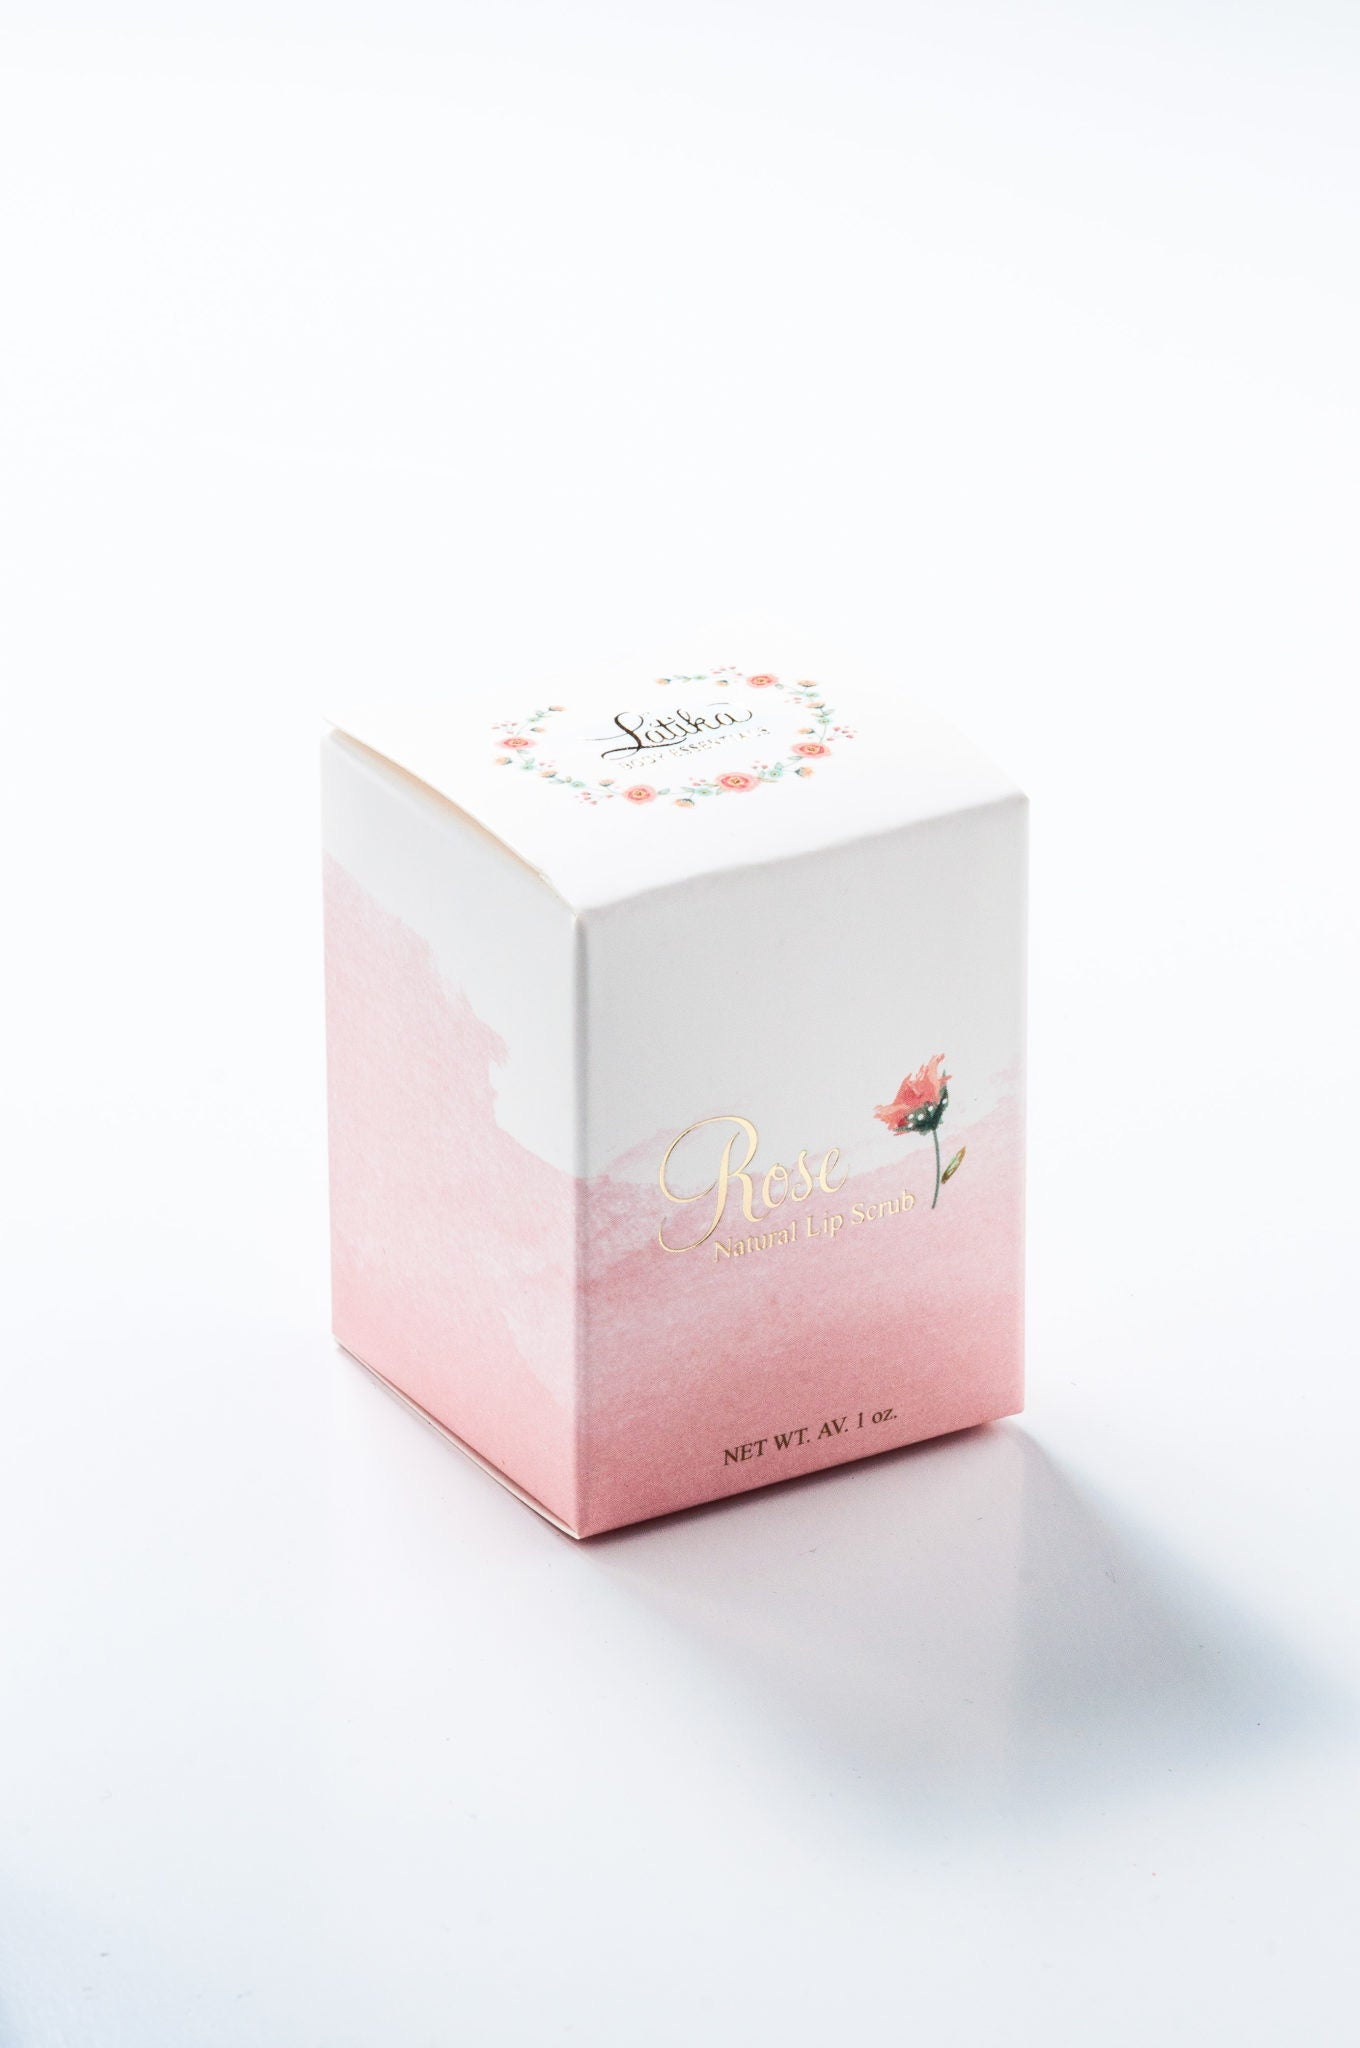 ROSE – Edible Sugar Lip Scrub Kit